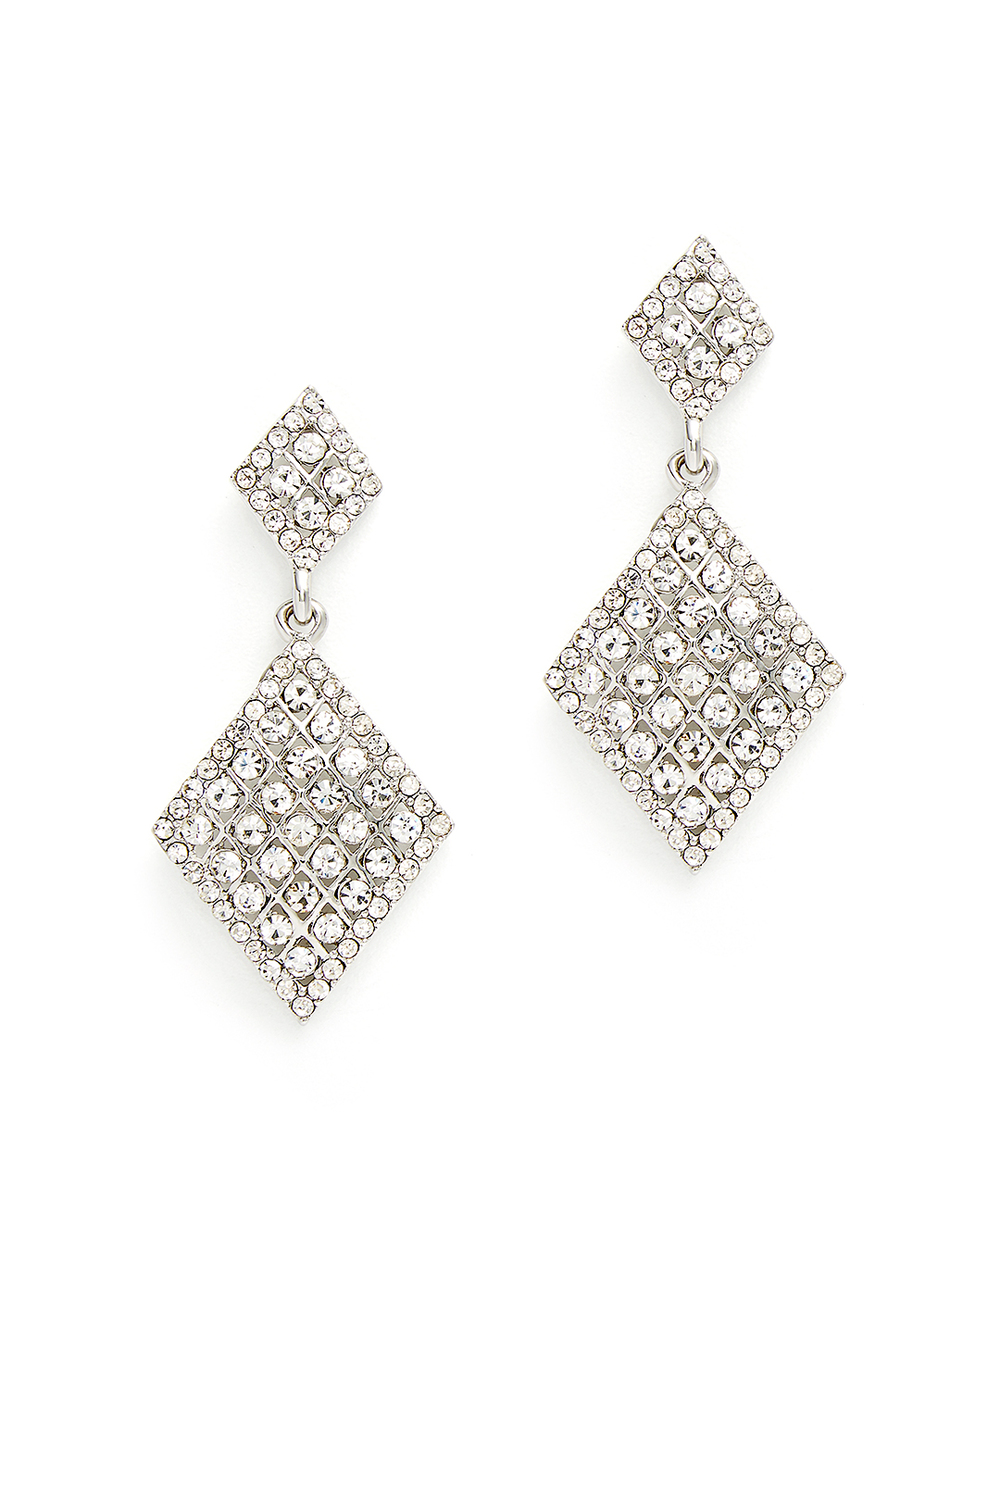 jewelry_earrings_rj_graziano_pave_the_way_0.jpg